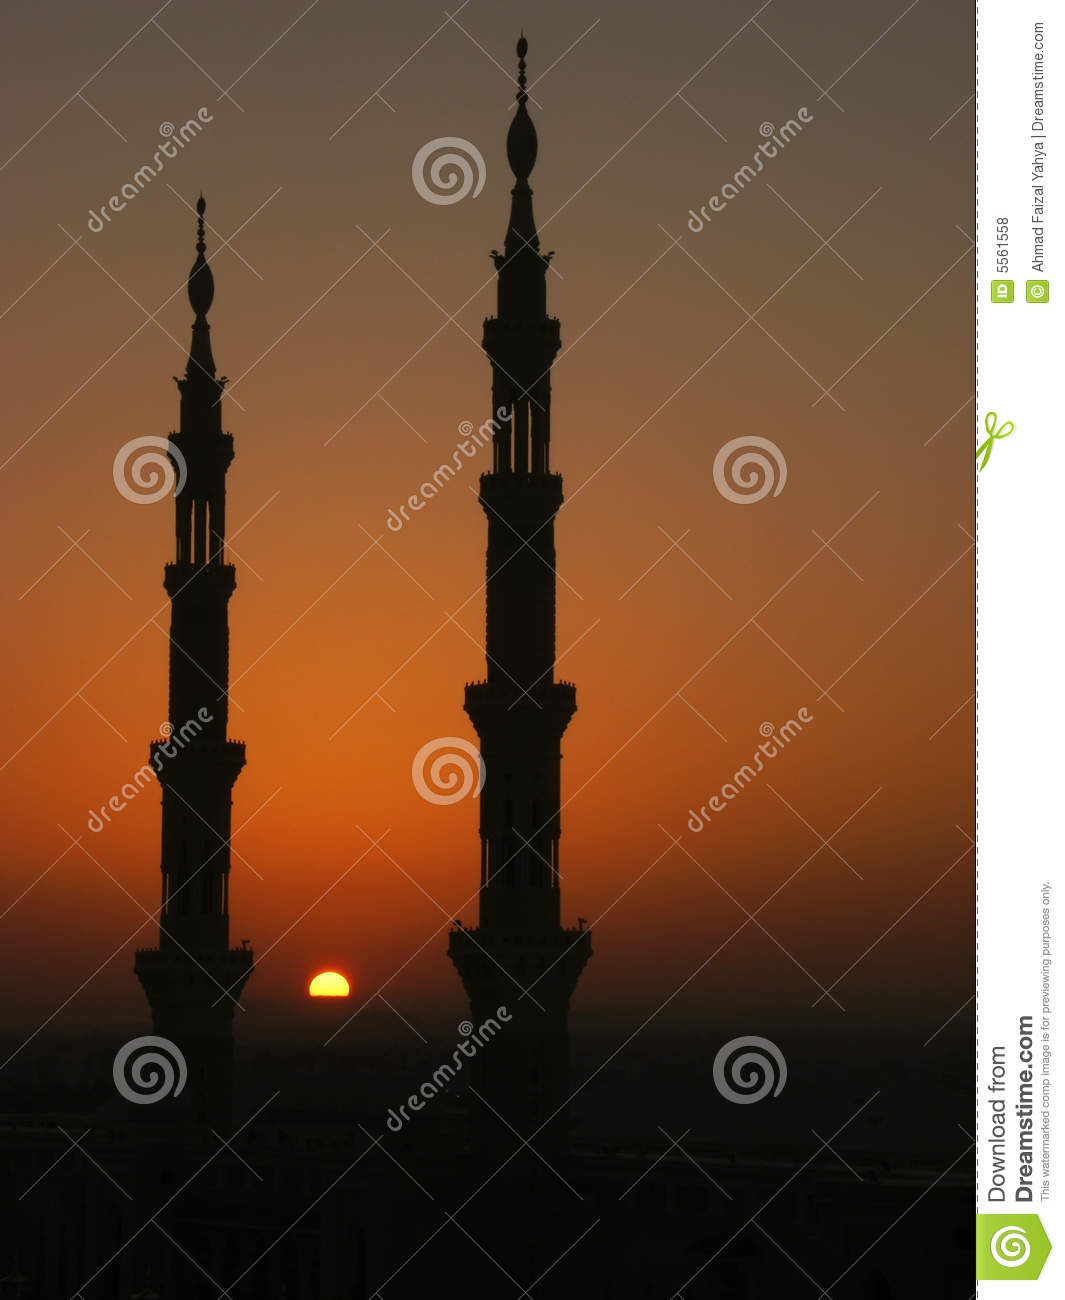 Silhouette of minarets of Nabawi mosque